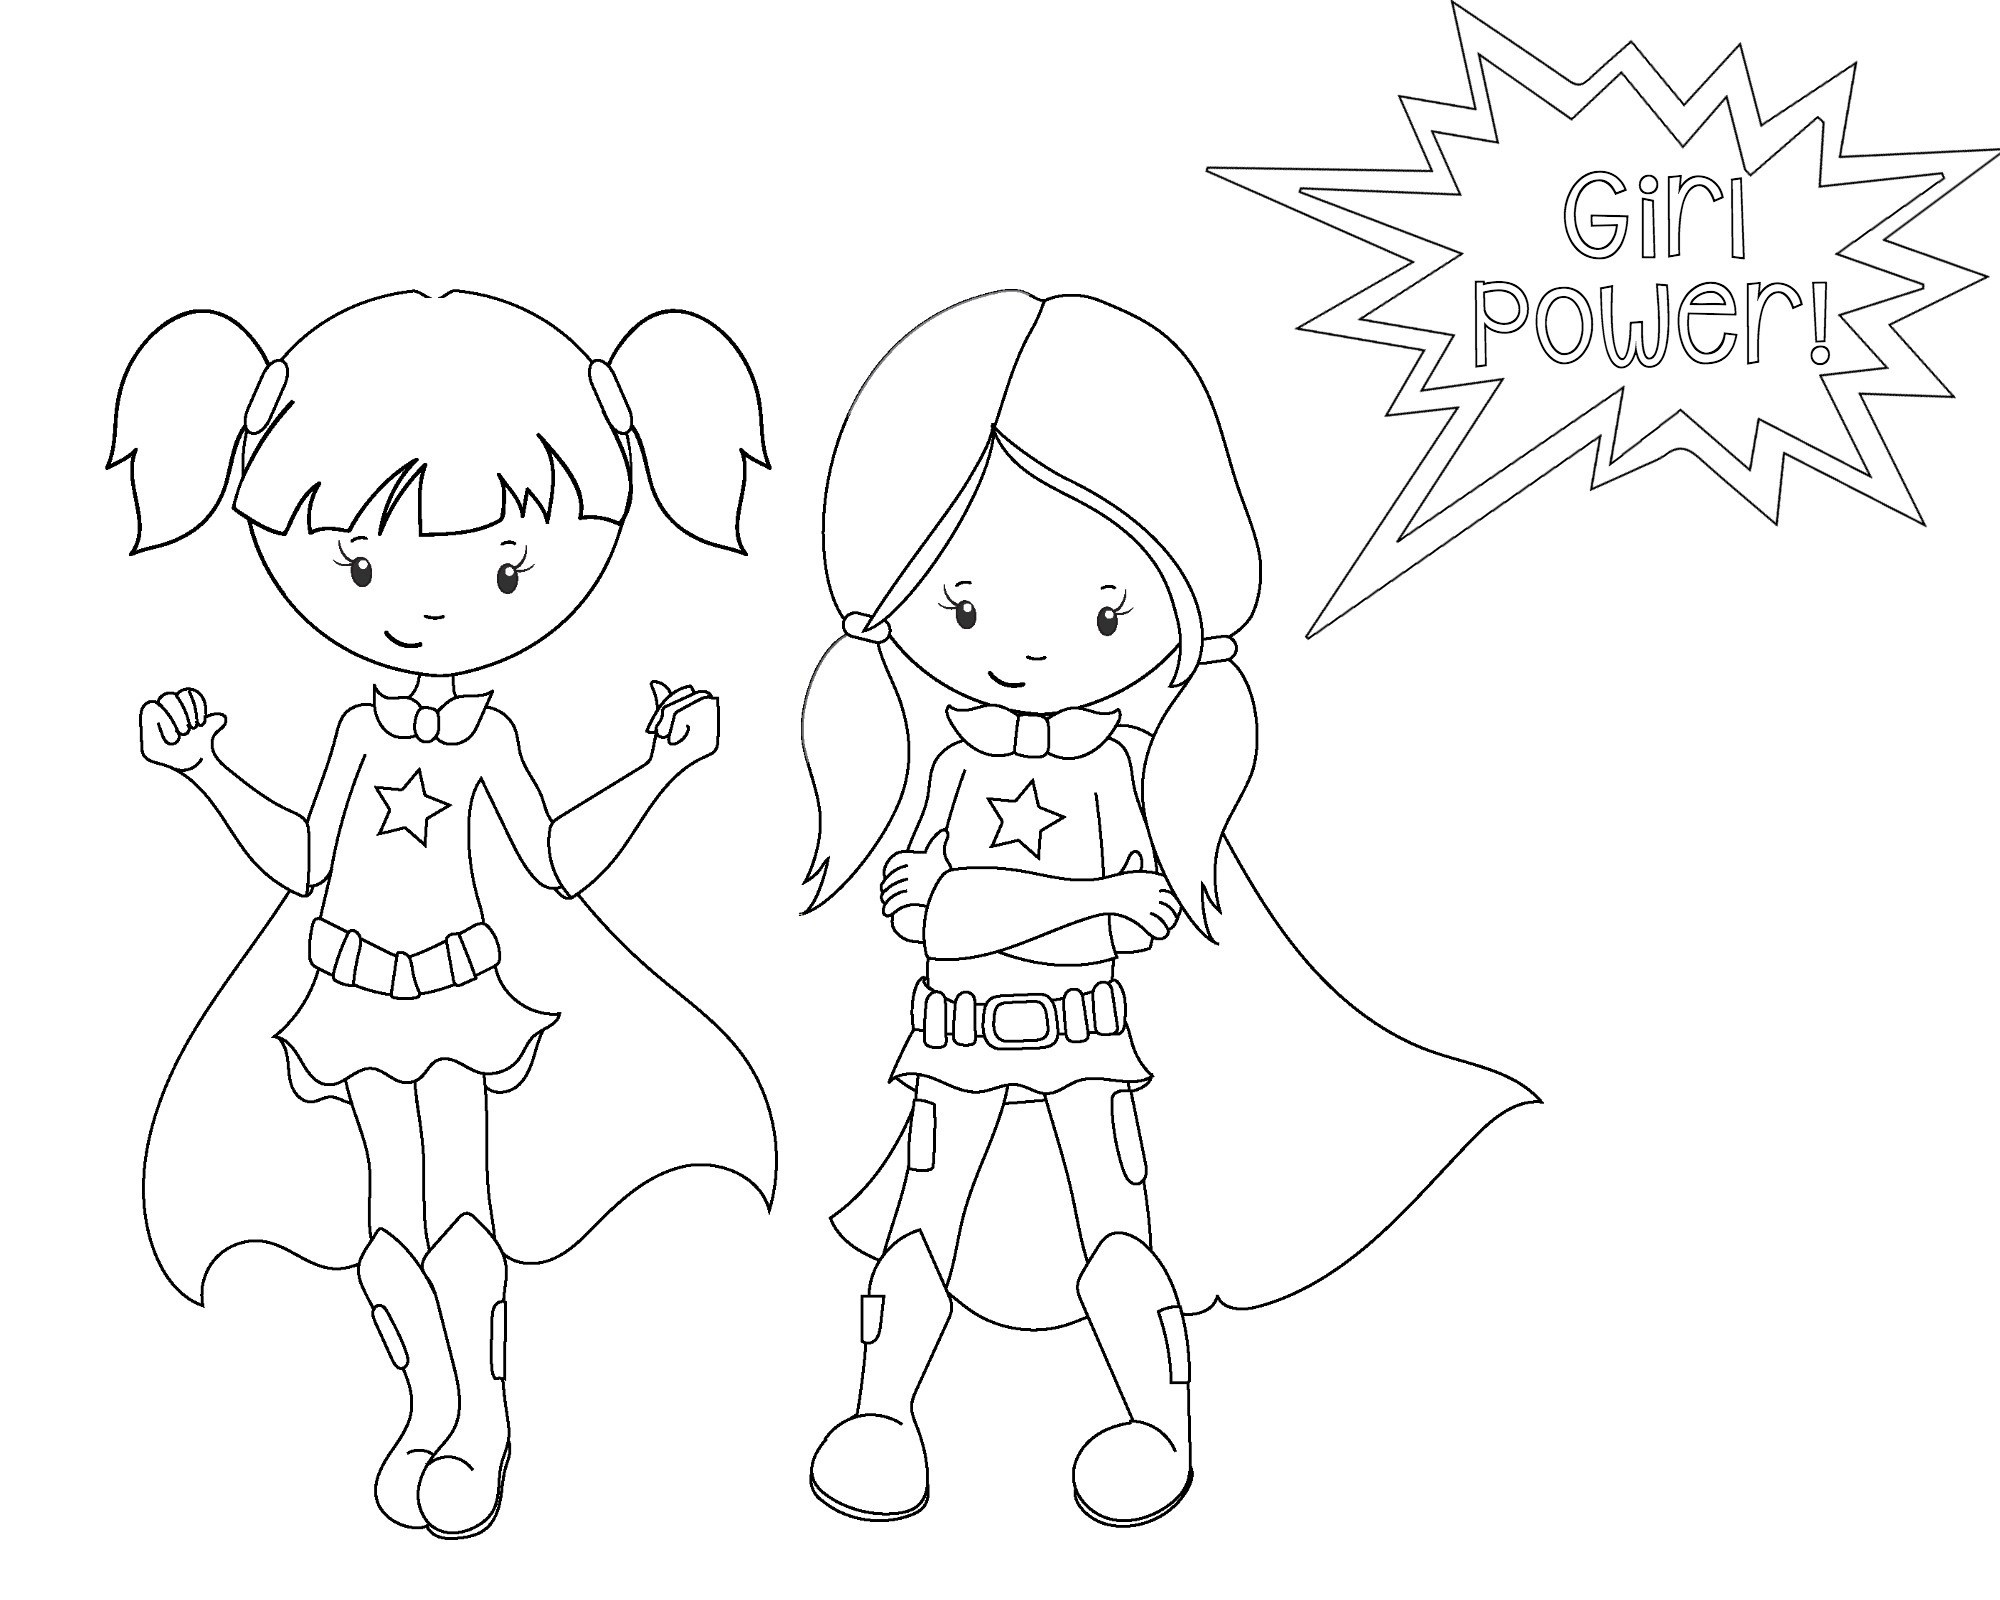 Super Heroes Coloring Pages Free Printable Superhero Coloring Sheets - Free Printable Superhero Coloring Pages